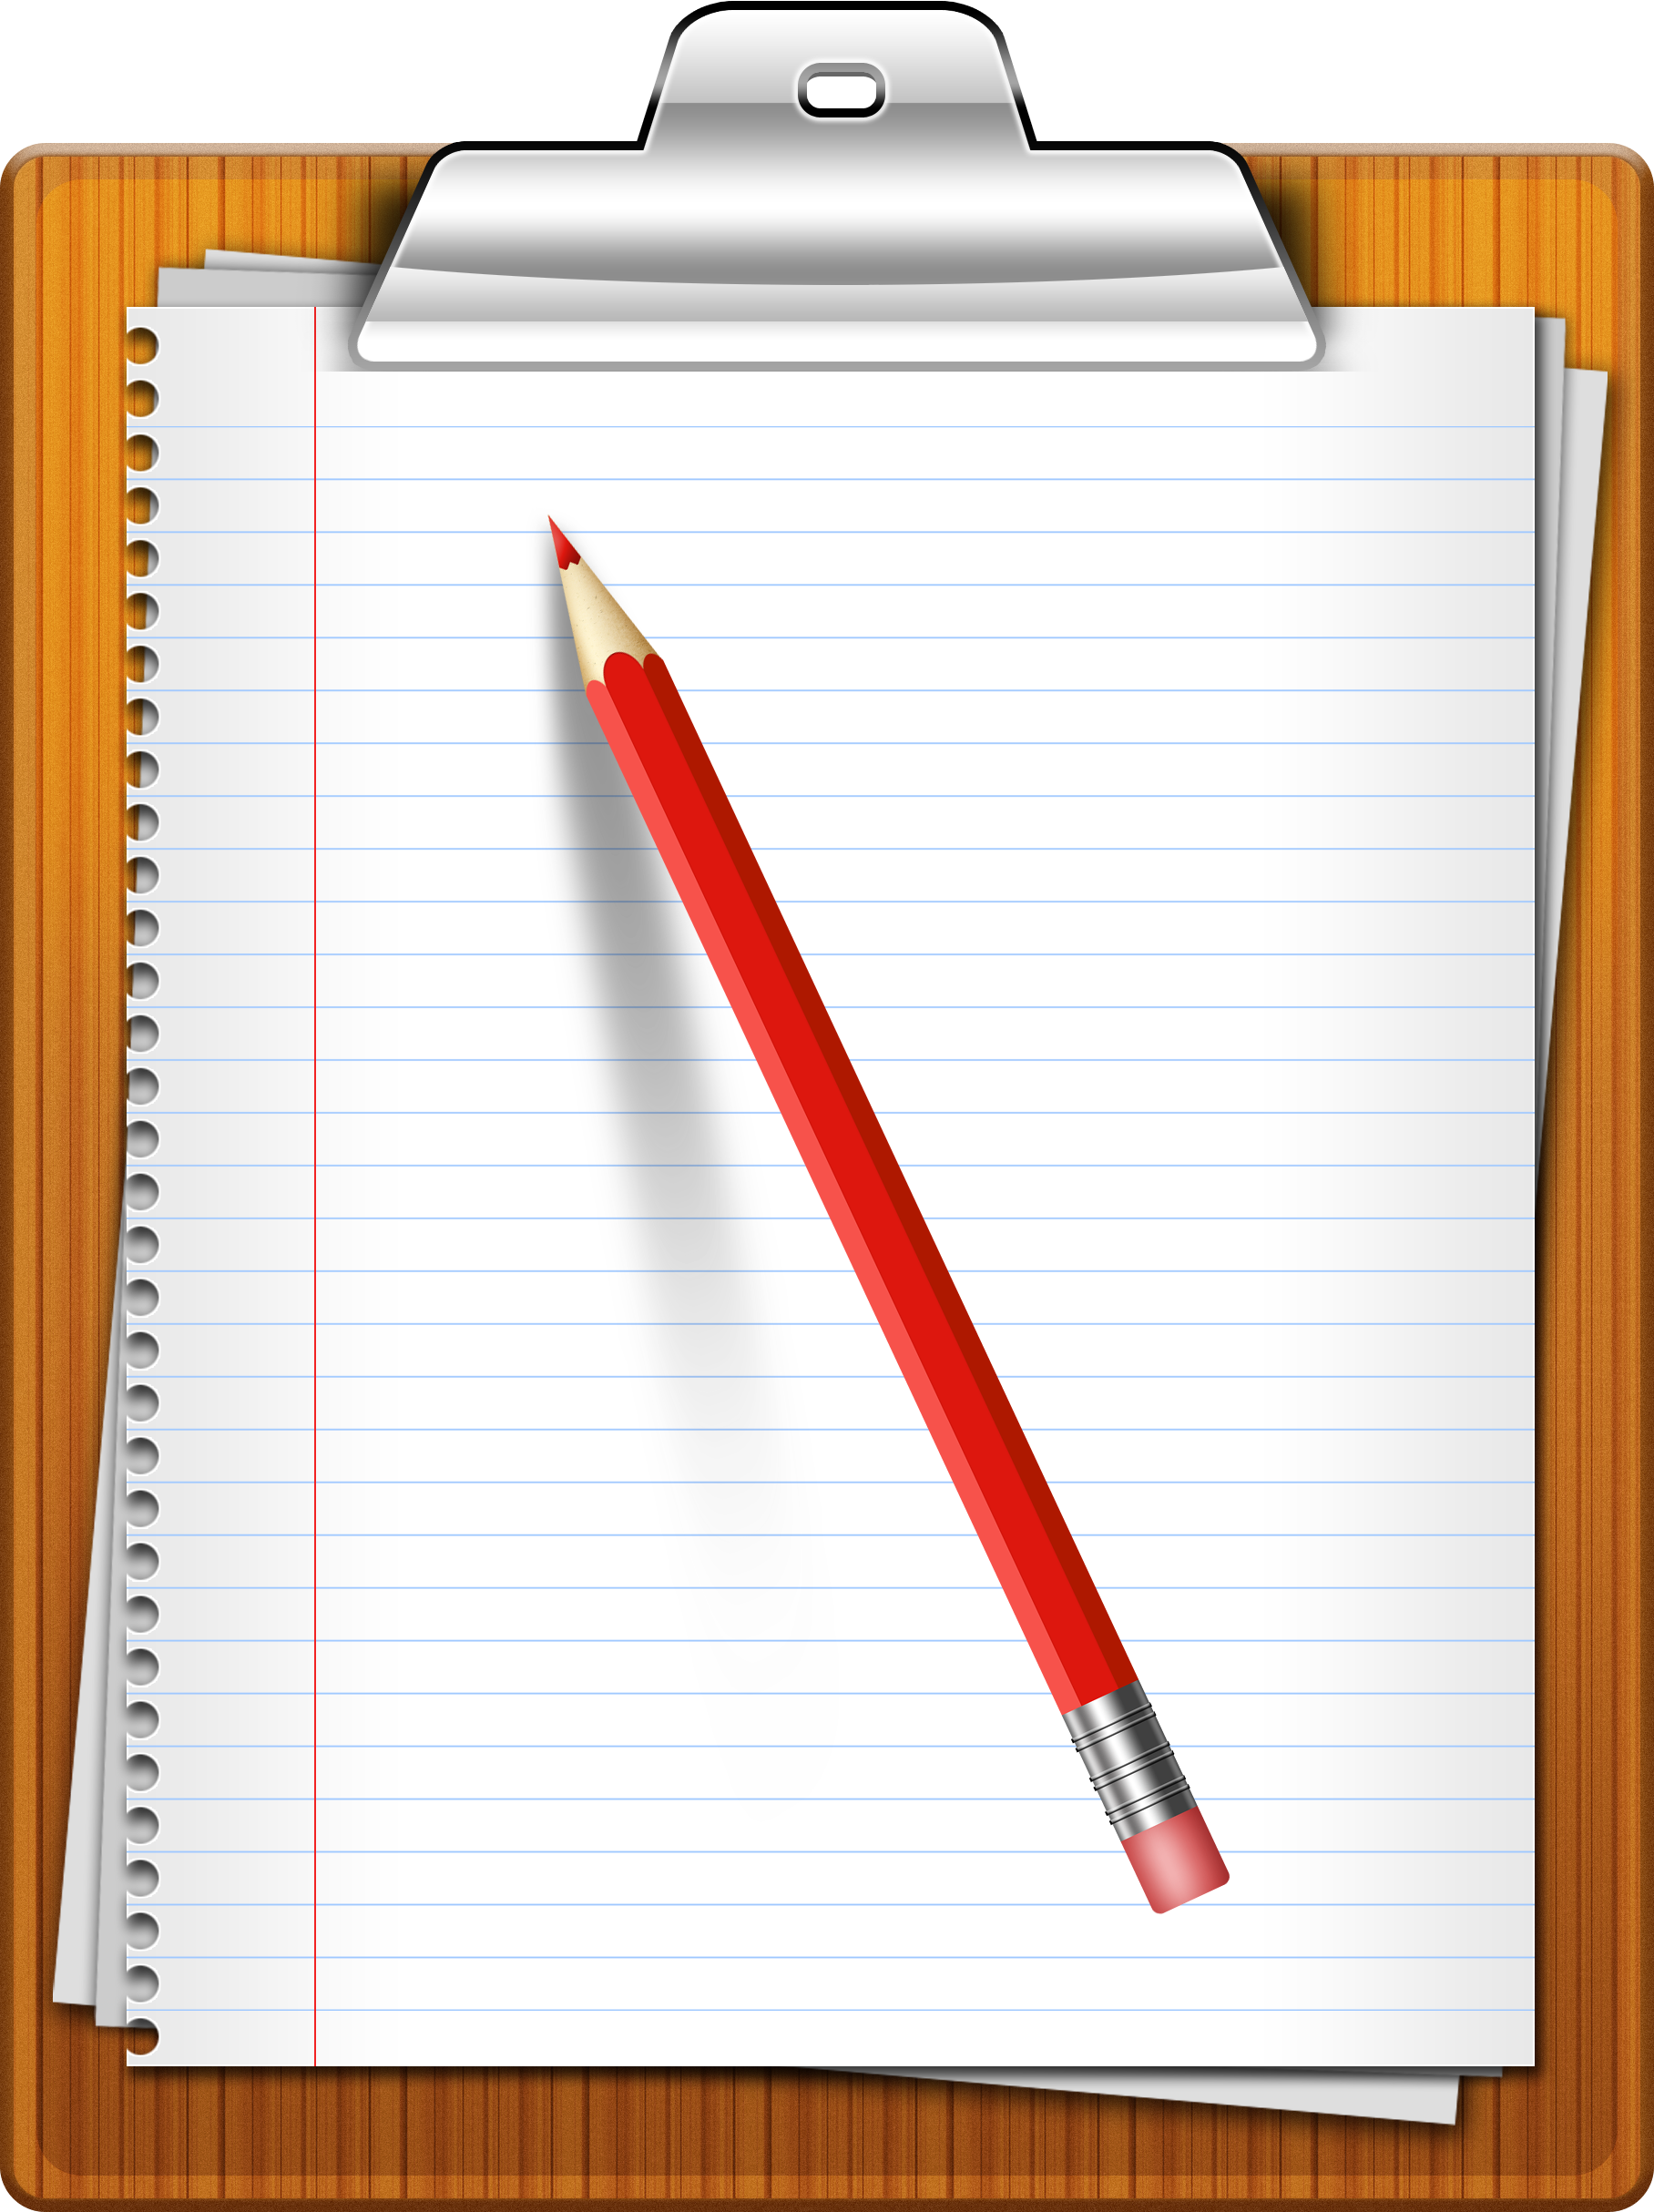 Paper and Pencil Clipart